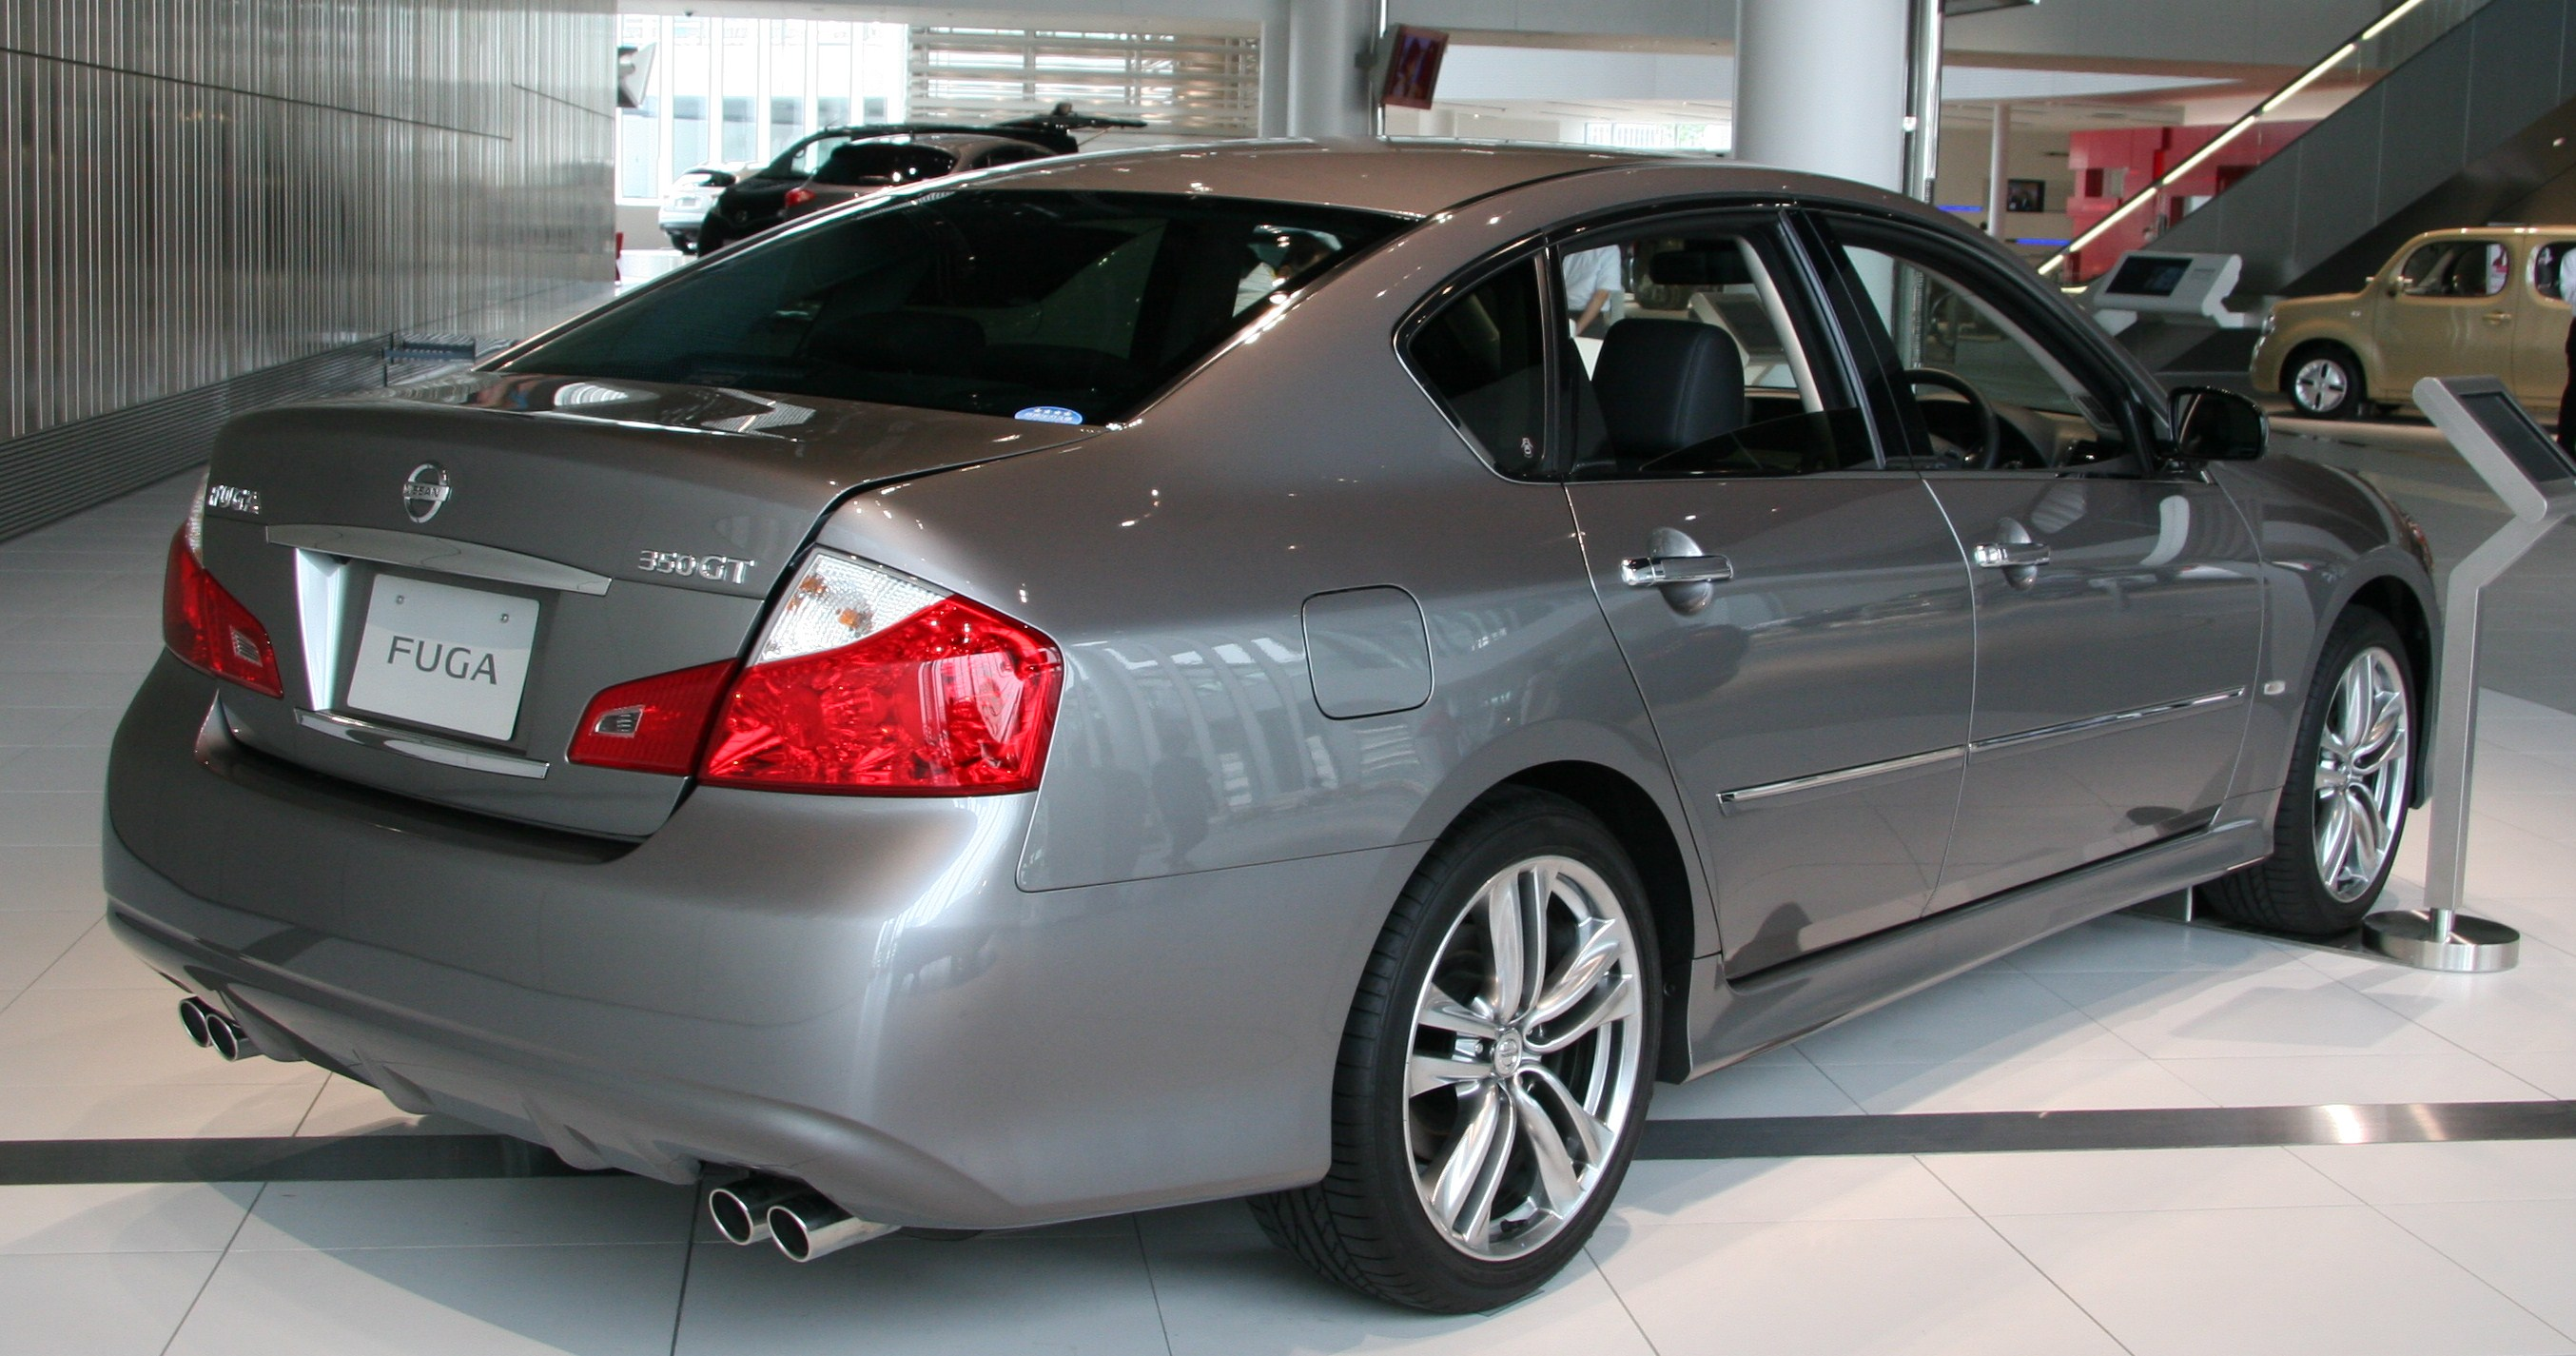 Nissan fuga gallery all pictures top nissan fuga gallery vanachro Choice Image